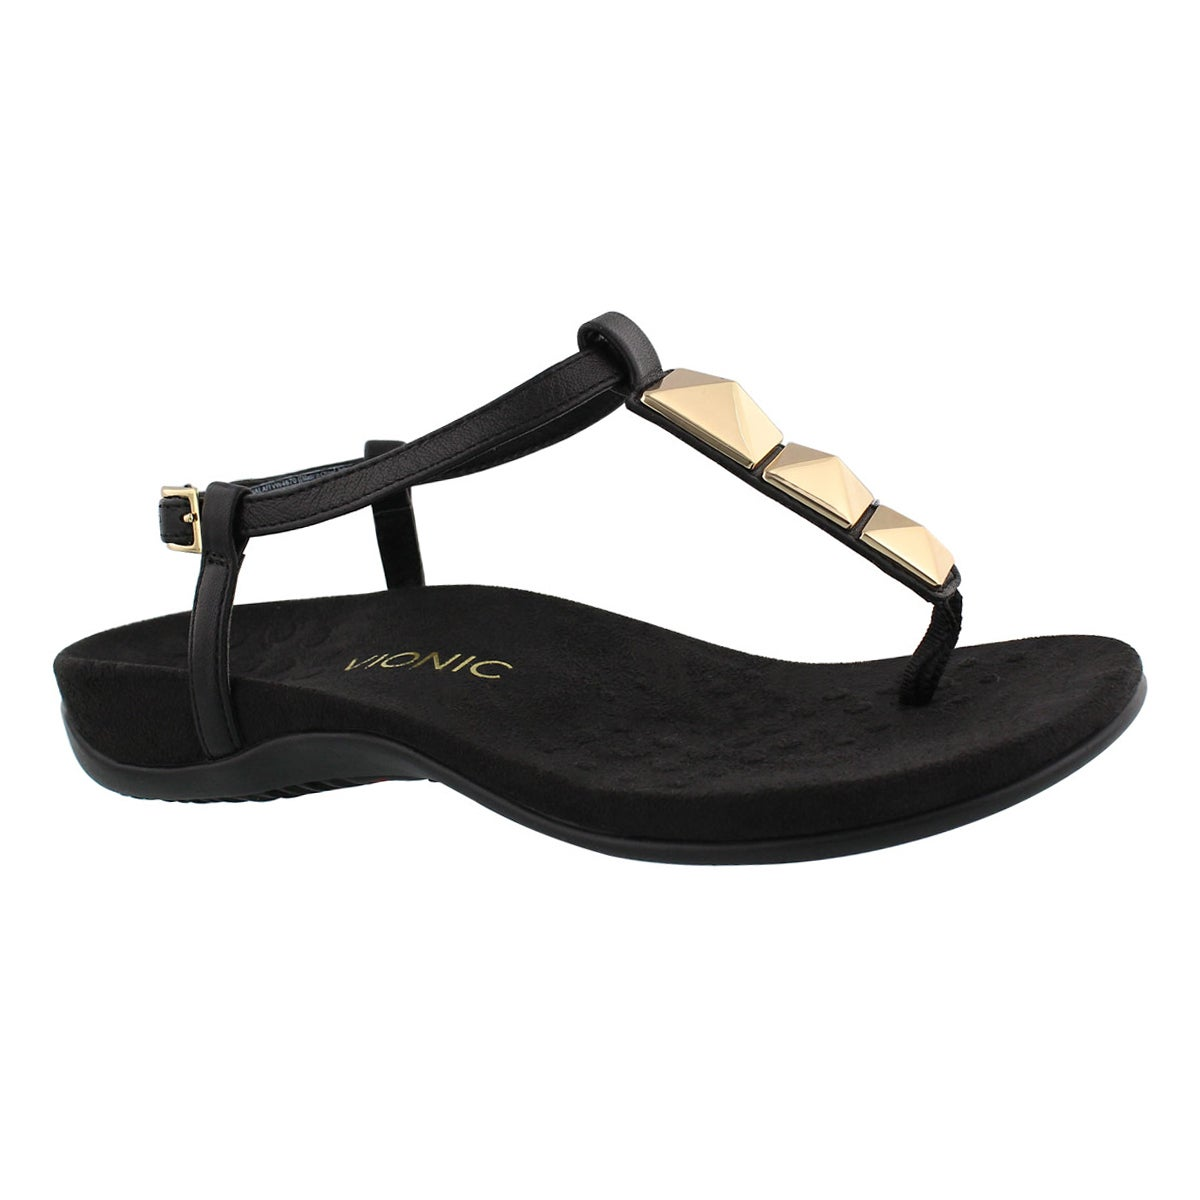 Women's NALA black arch support thong sandals